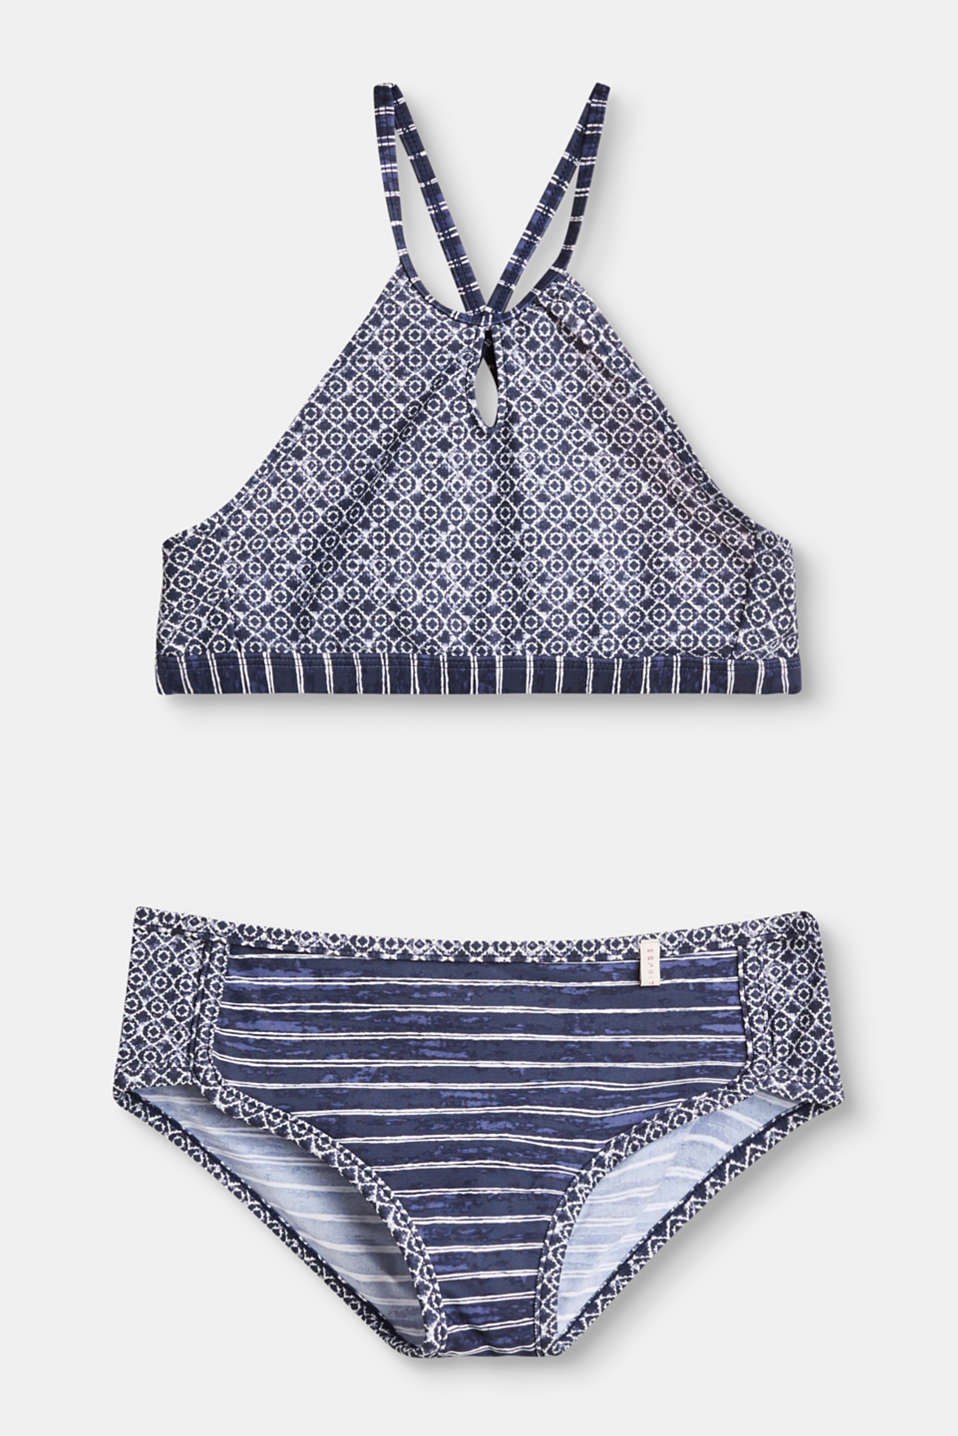 The mix of patterns featuring ornamental elements and uneven stripes makes this bikini extremely eye-catching.